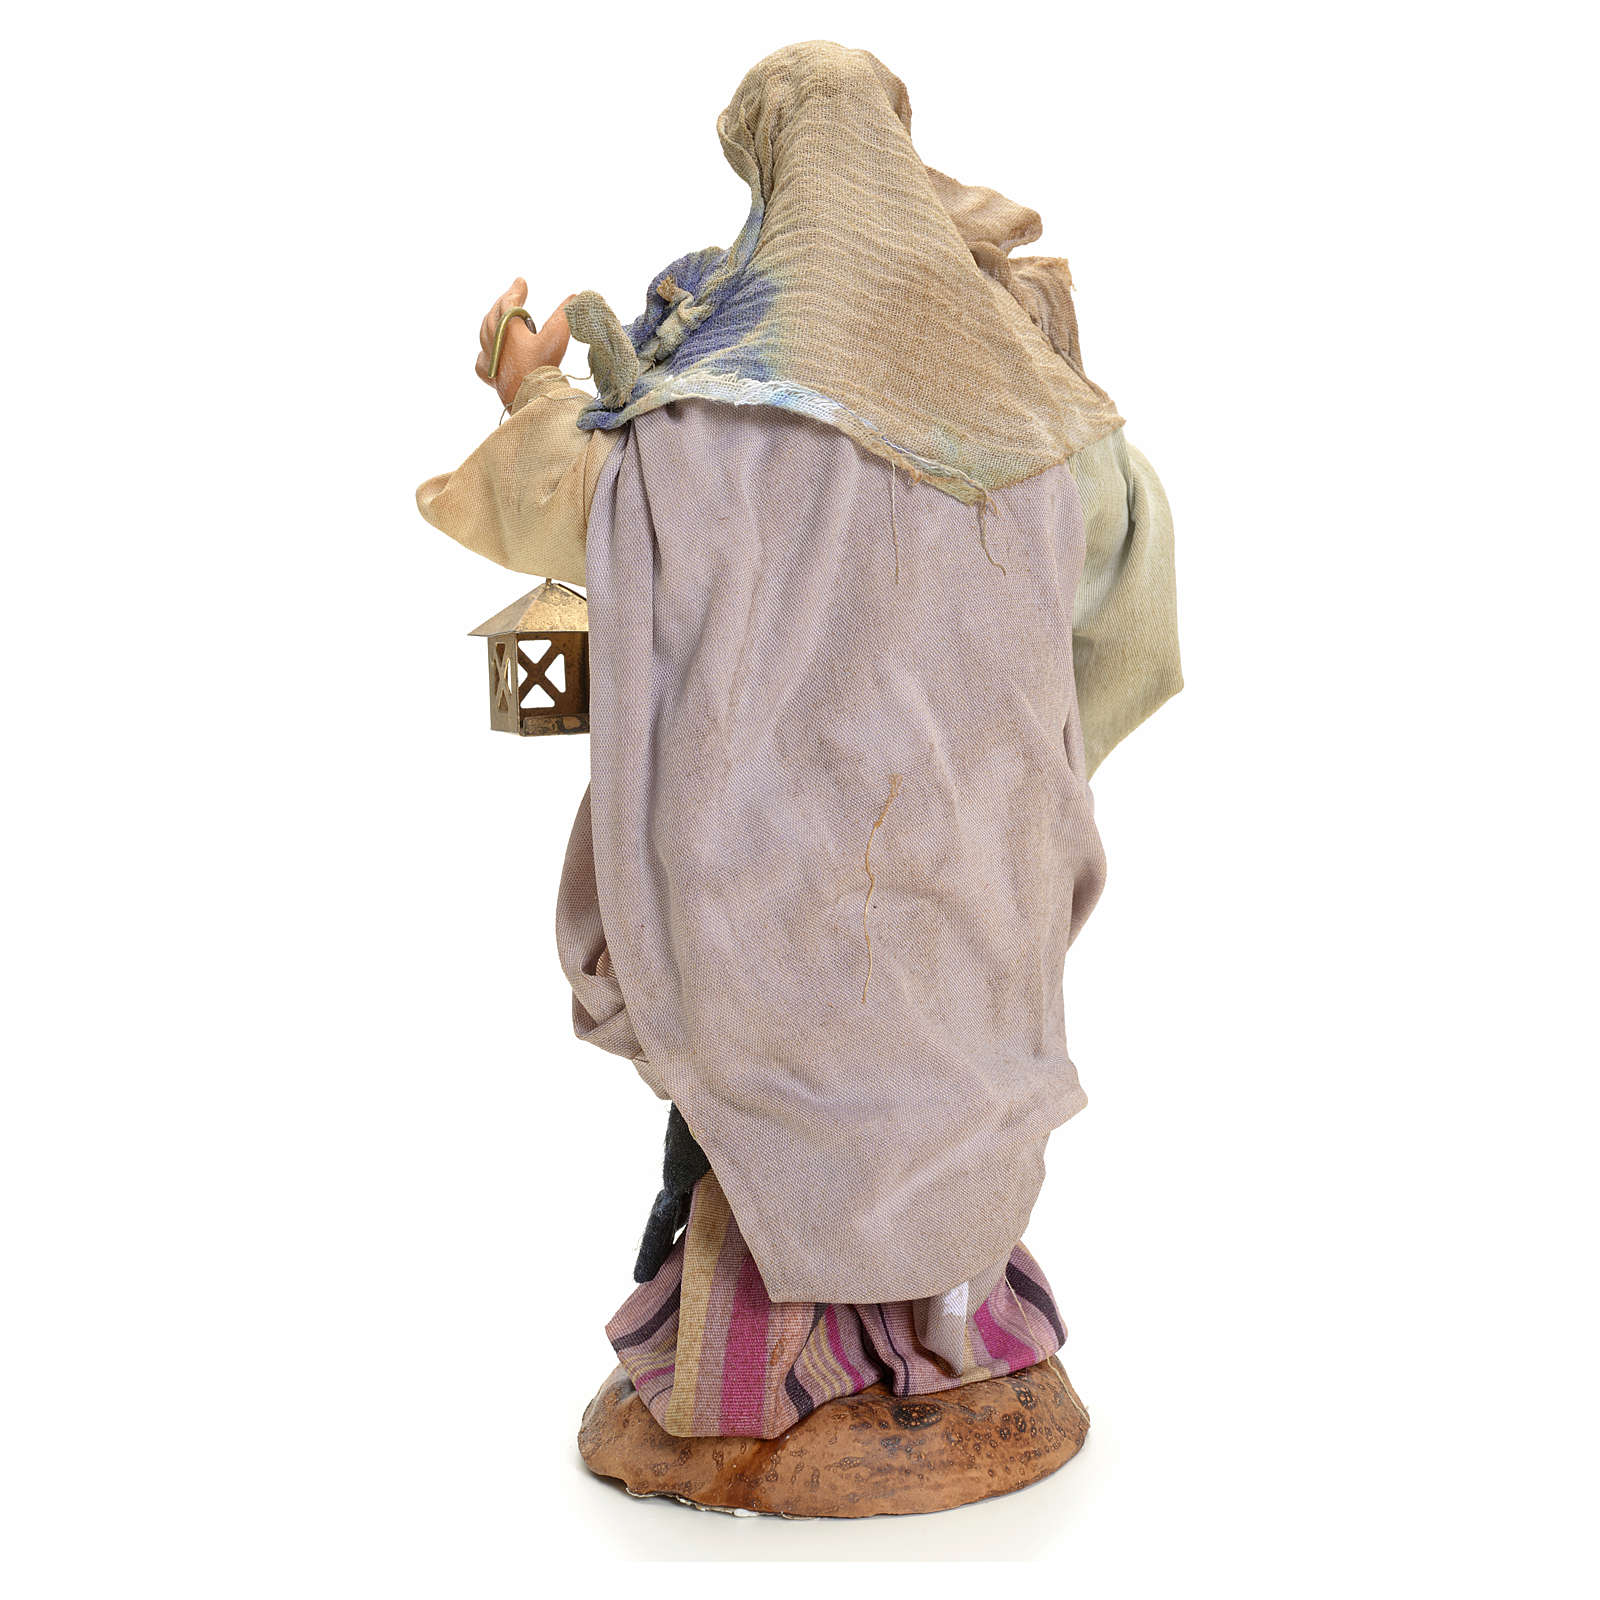 Neapolitan nativity figurine, woman with lantern 18cm 4